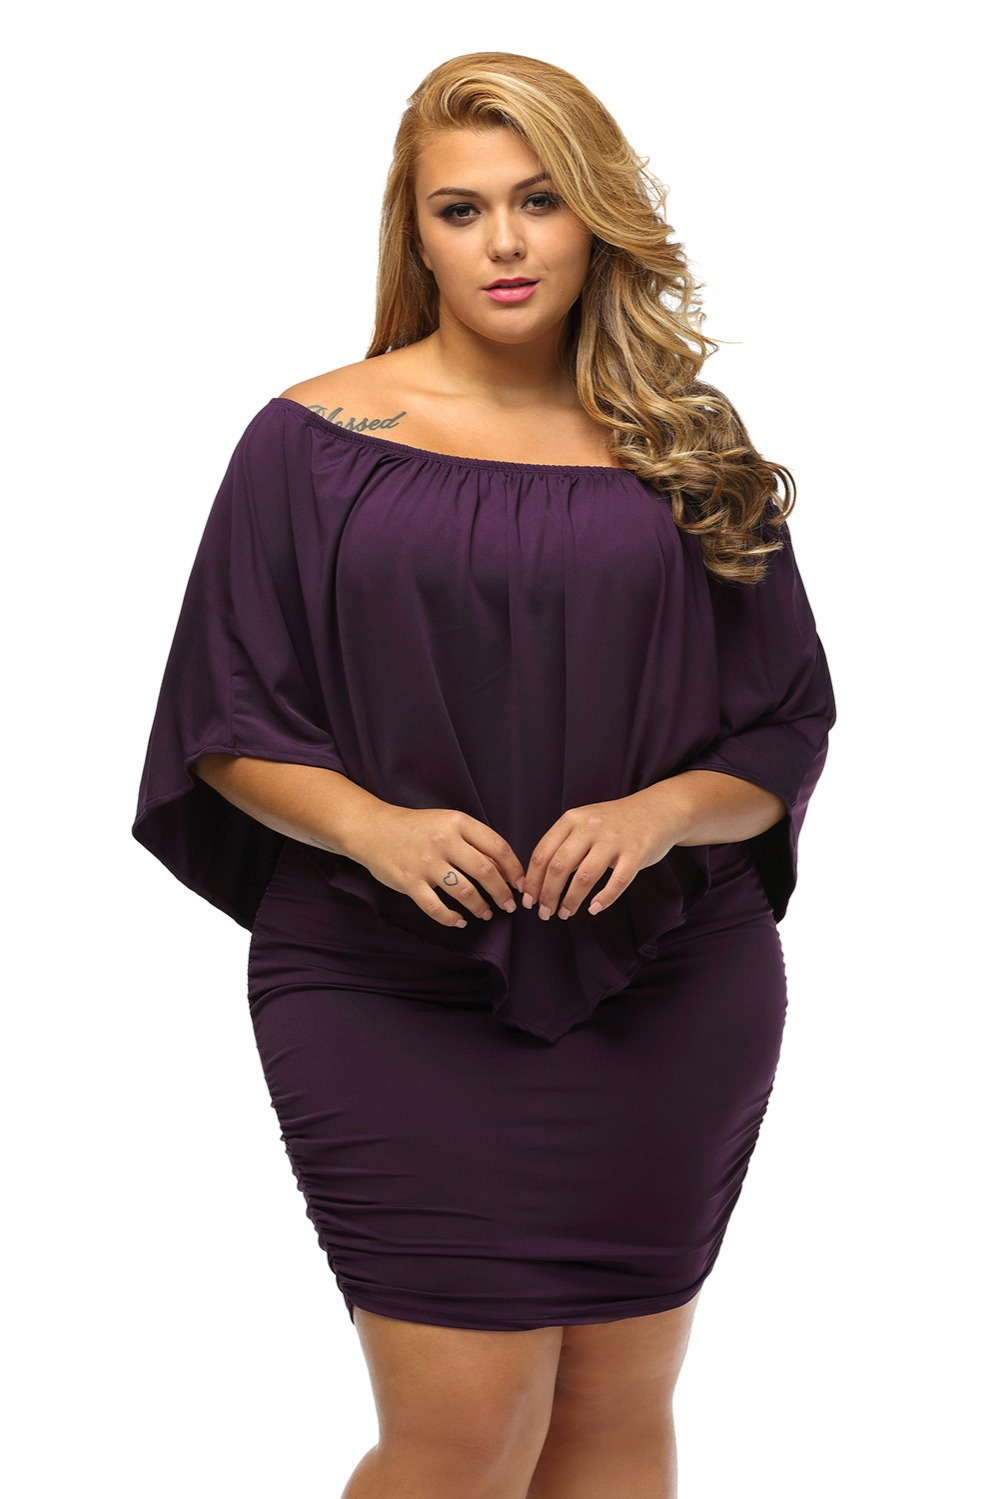 Find the best selection of cheap big women clothing in bulk here at roeprocjfc.ga Including women clothing china and tupac women clothing at wholesale prices from big women clothing manufacturers. Source discount and high quality products in .